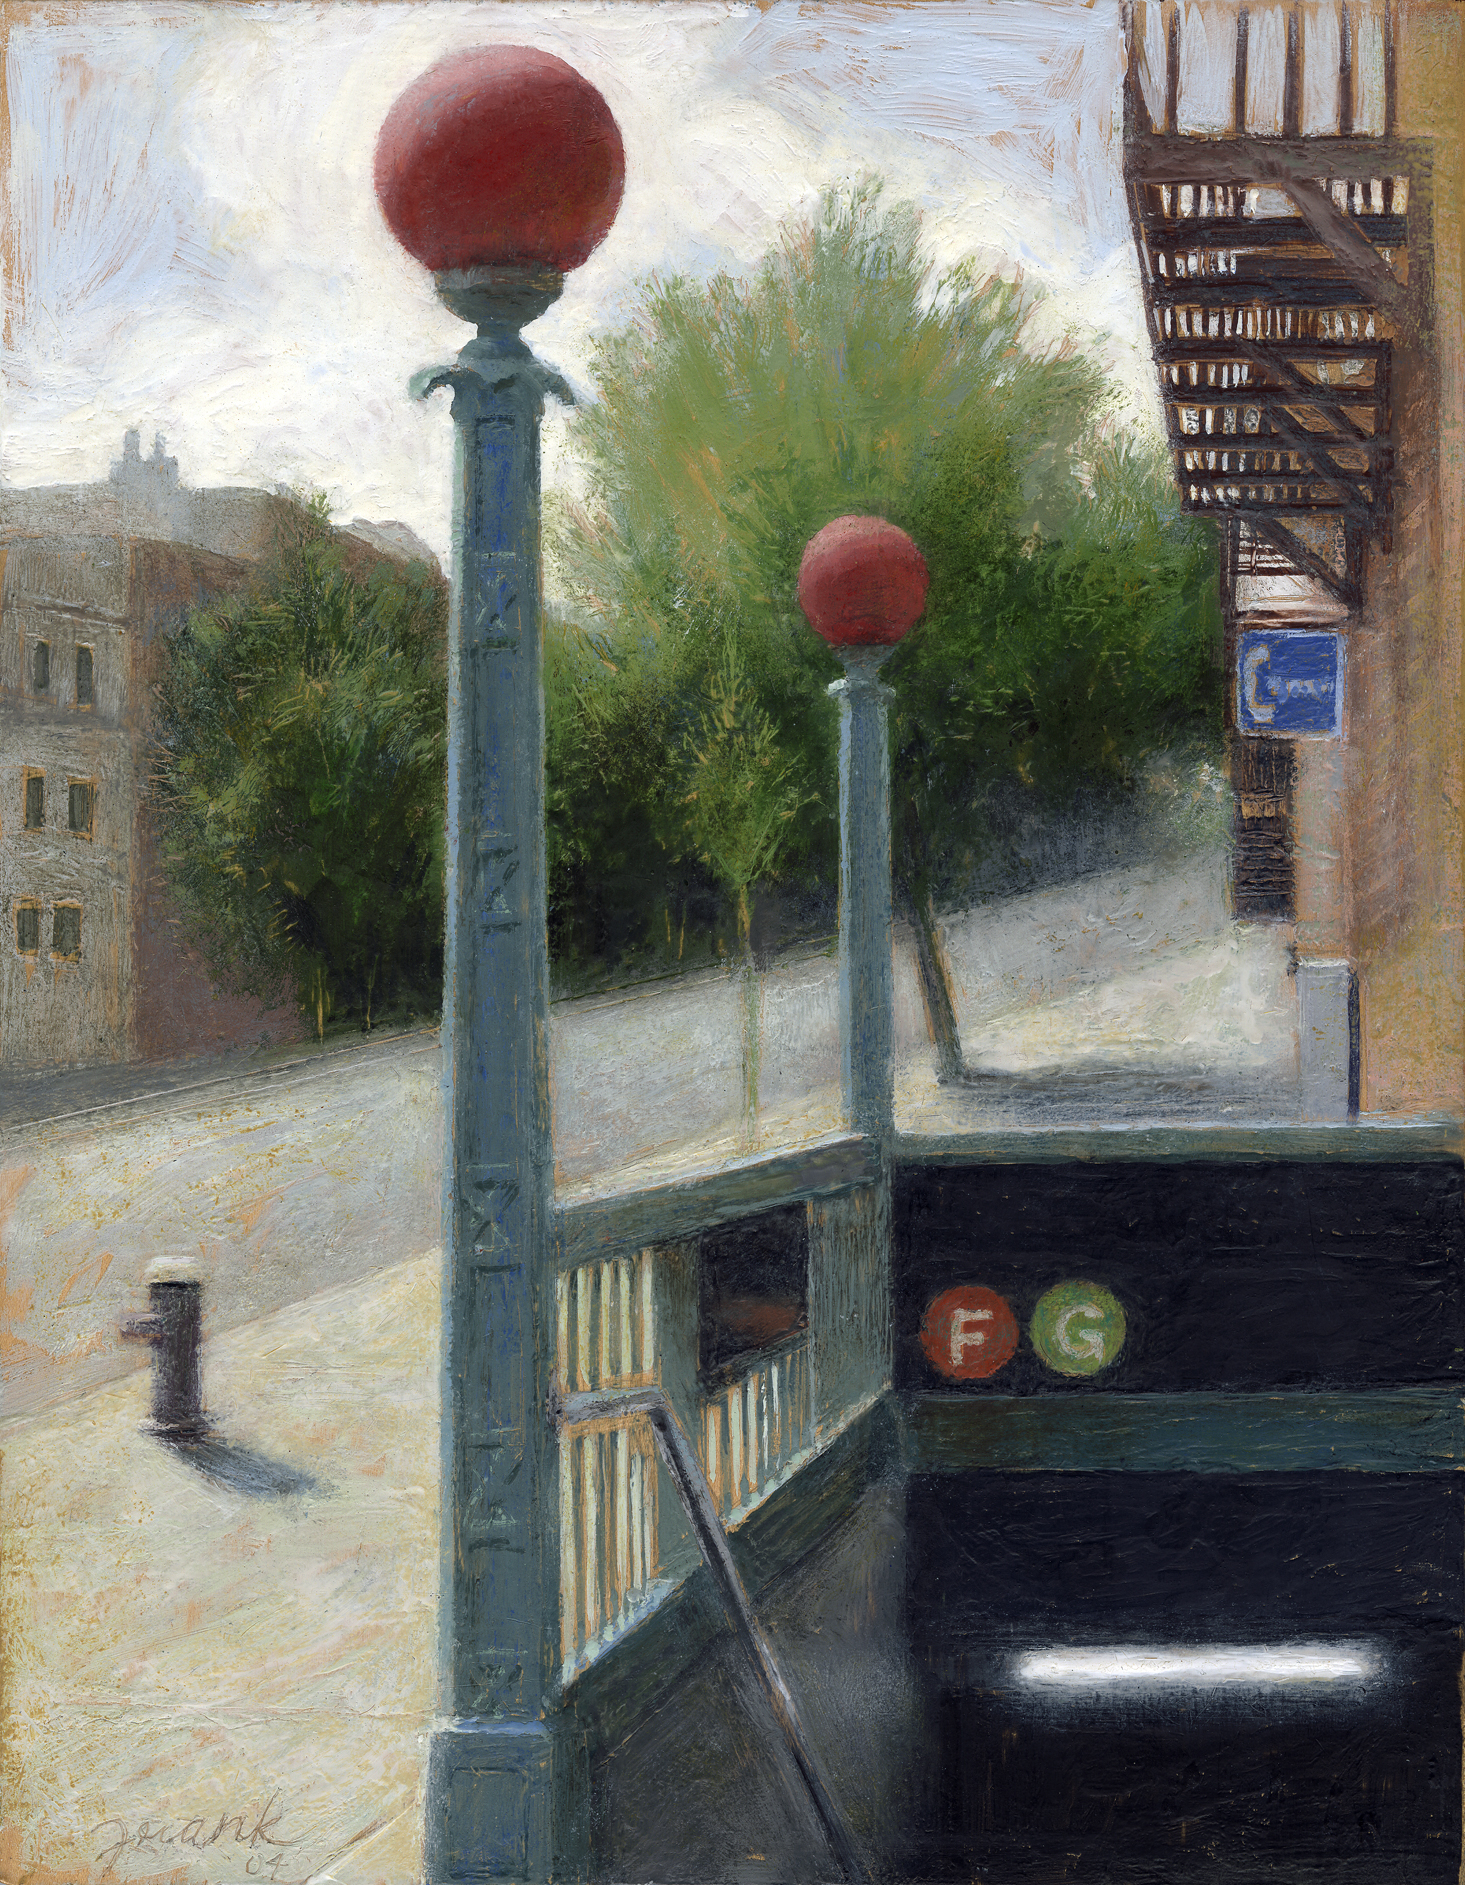 Subway Entrance, encaustic beeswax on wood panel, 2004